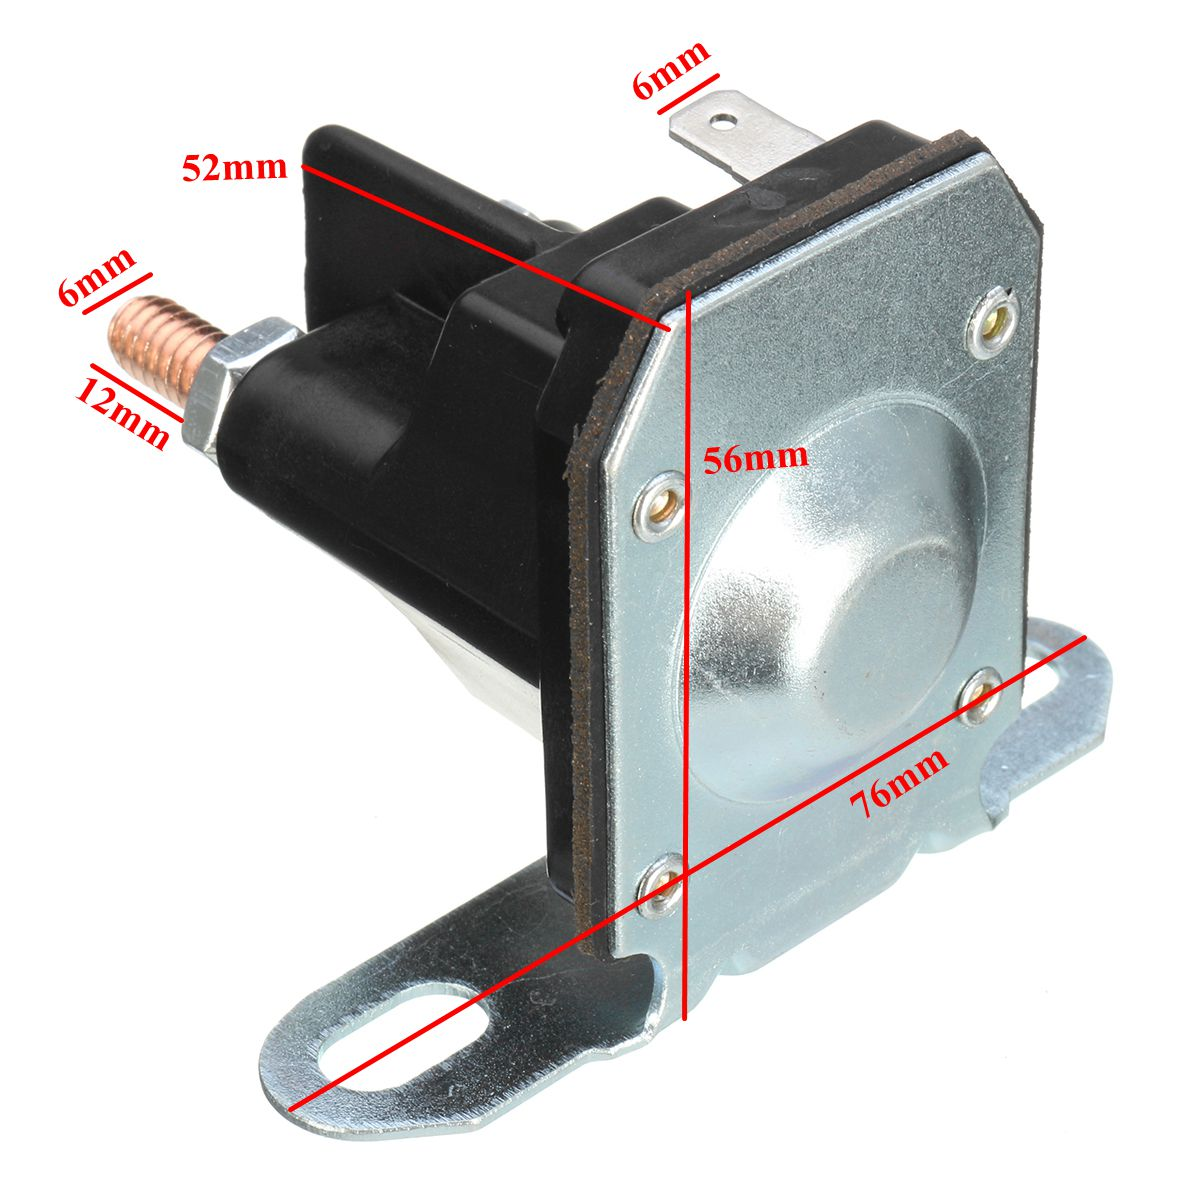 3 Pole Starter Solenoid Relay Switch Universal Stens For MTD Lawnmower